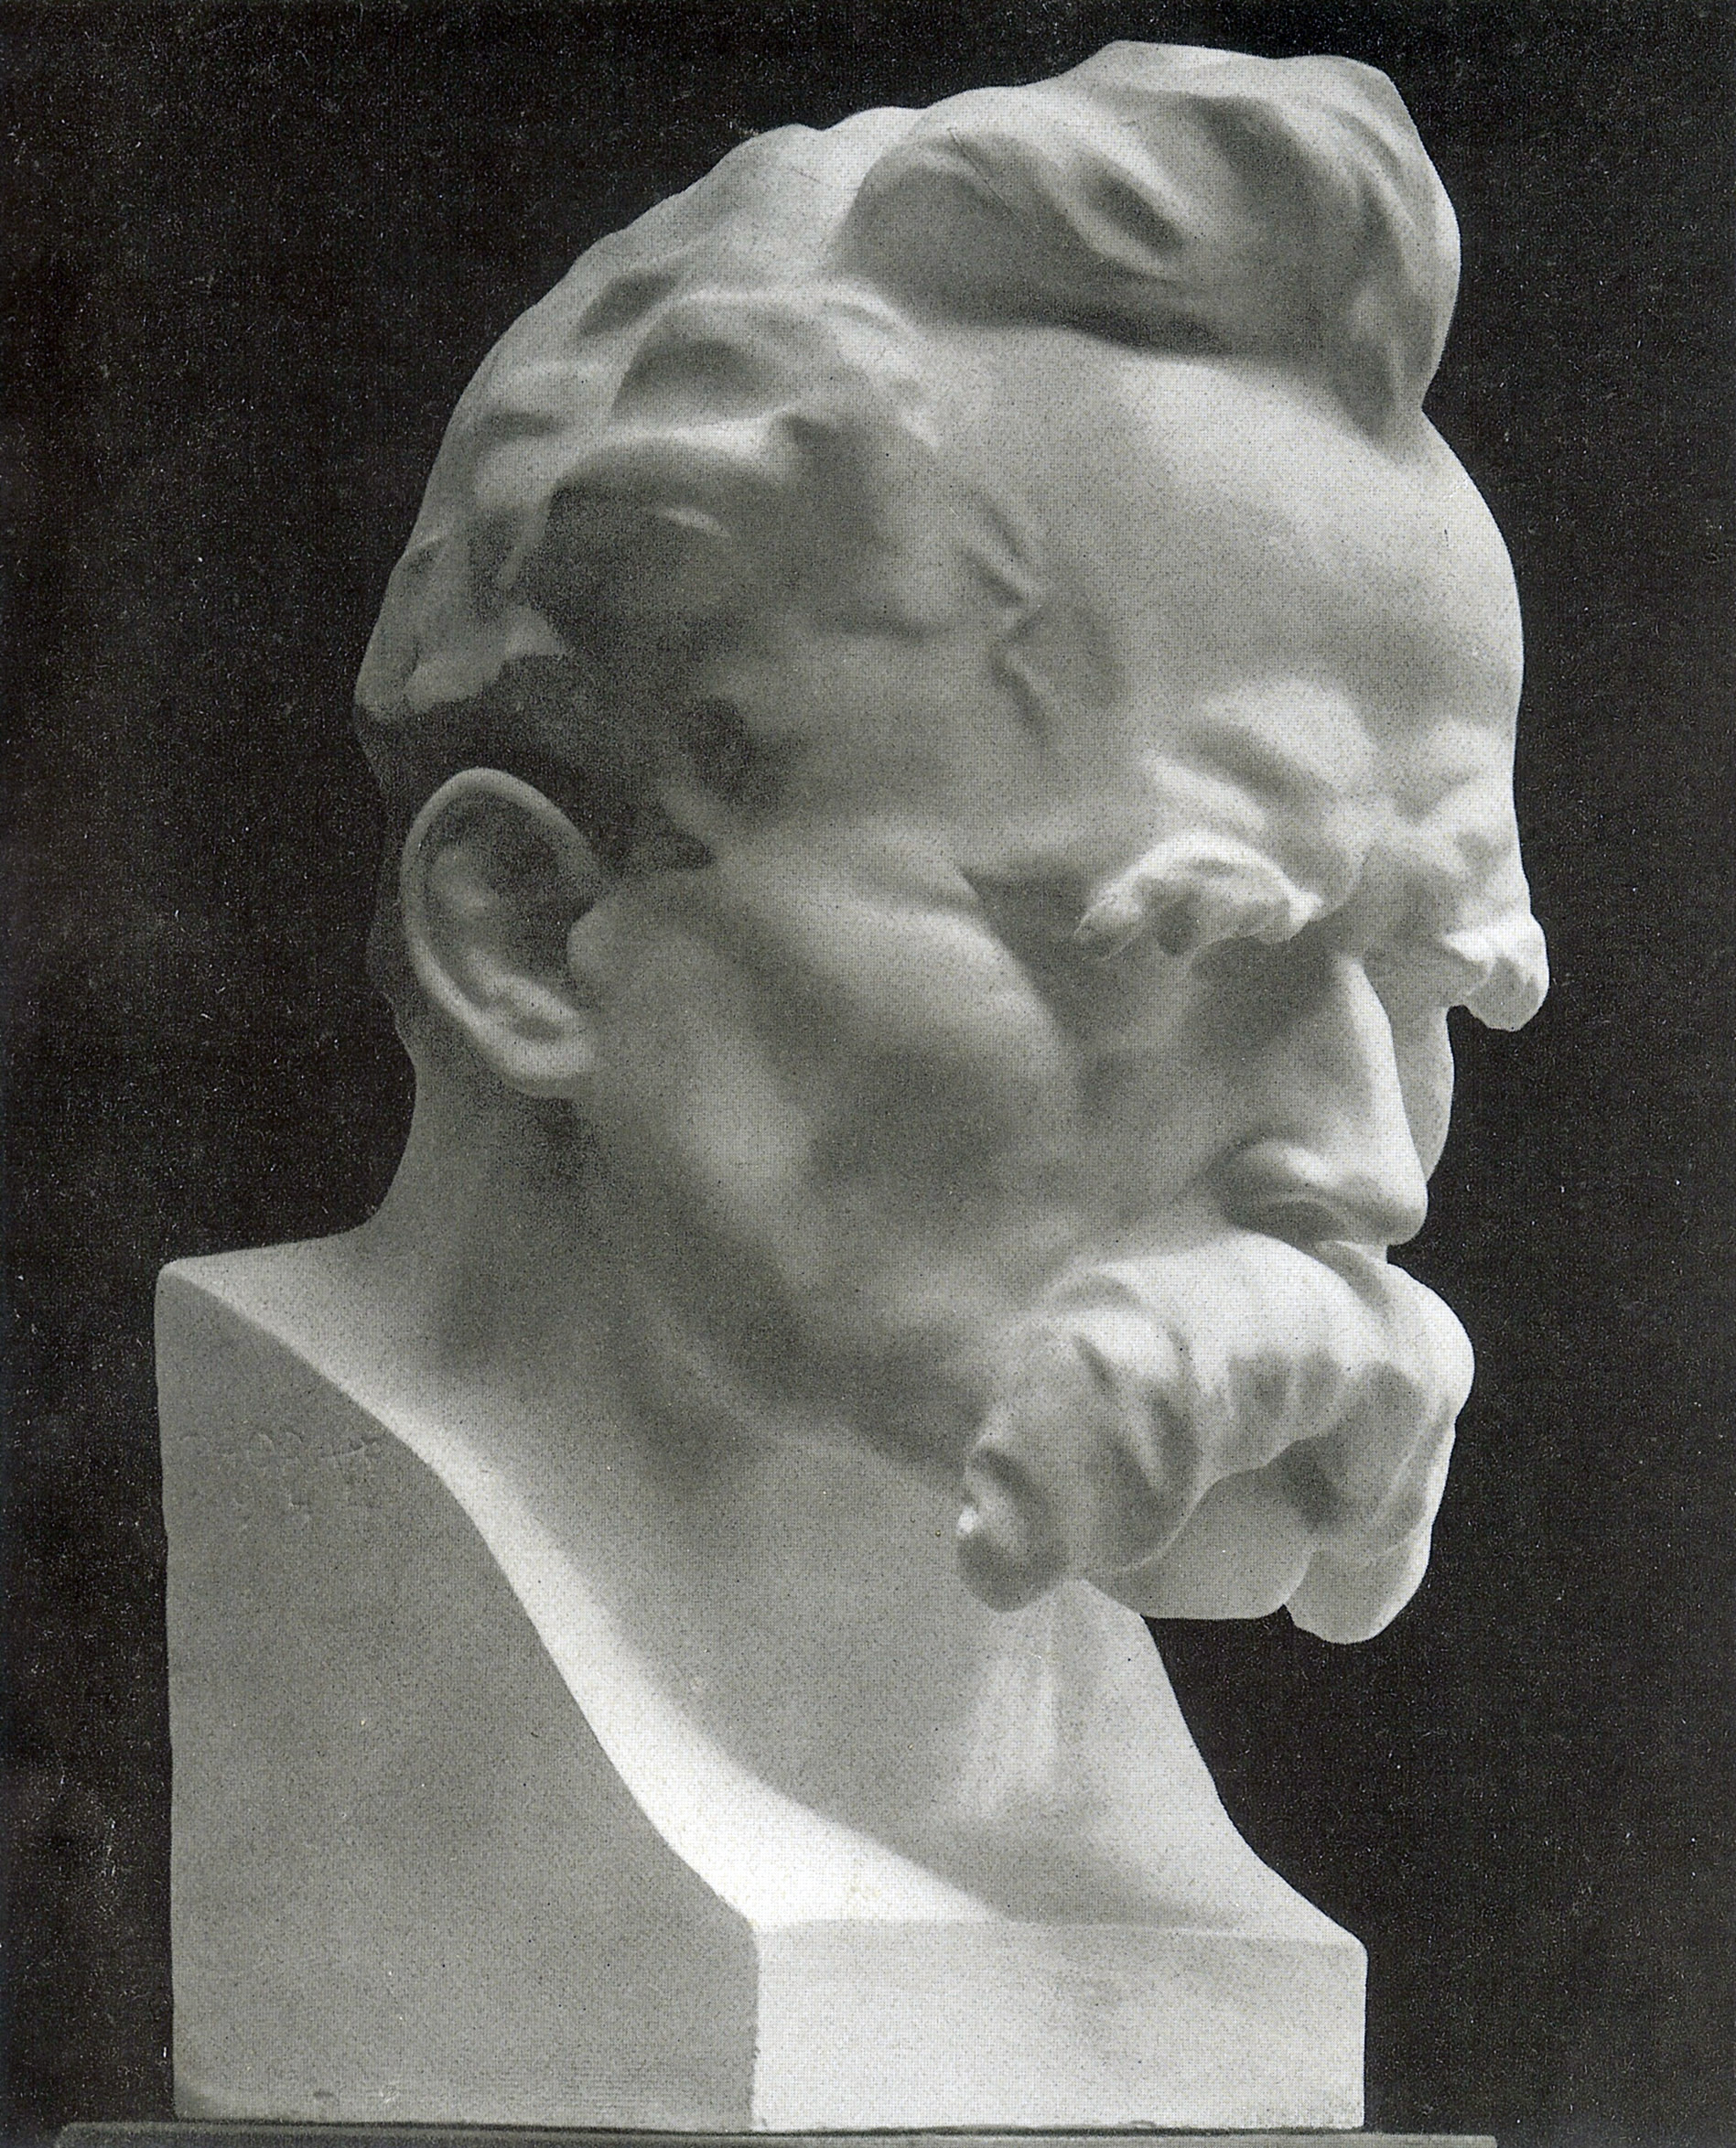 an introduction to the portrait of friedrich nietzsche Living philosophy: a historical introduction to philosophical ideas / edition 2 living philosophy, second edition, is a historically organized, introductory hybrid text/reader that guides students through the story of philosophical thought from the pre-socratics to the present, providing cultural and intellectual background and explaining why.